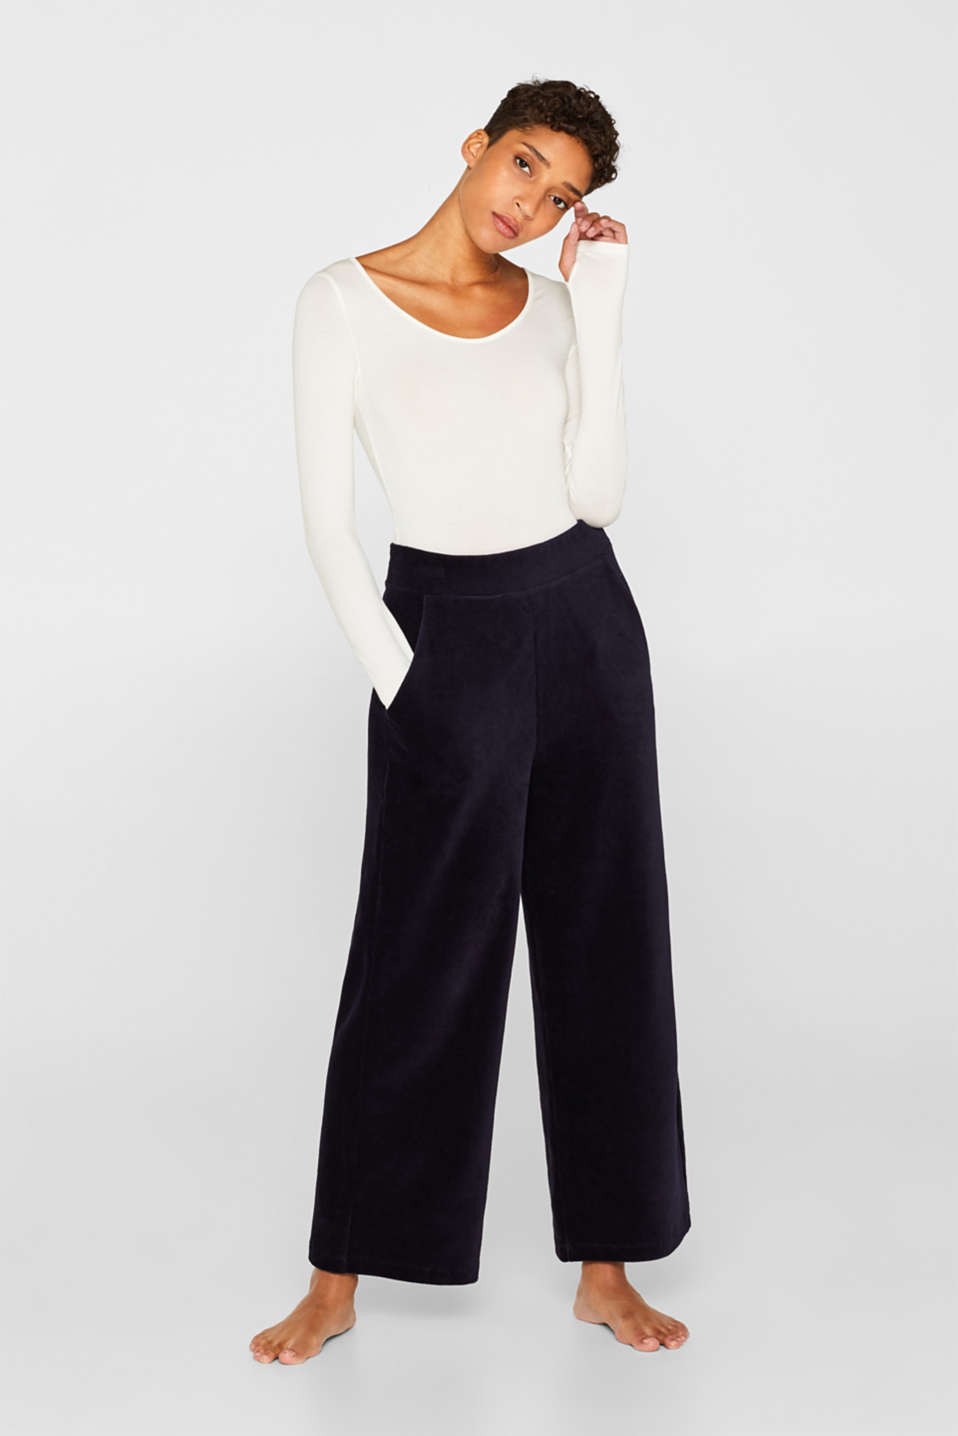 Cord-style stretch jersey trousers, NAVY, detail image number 1